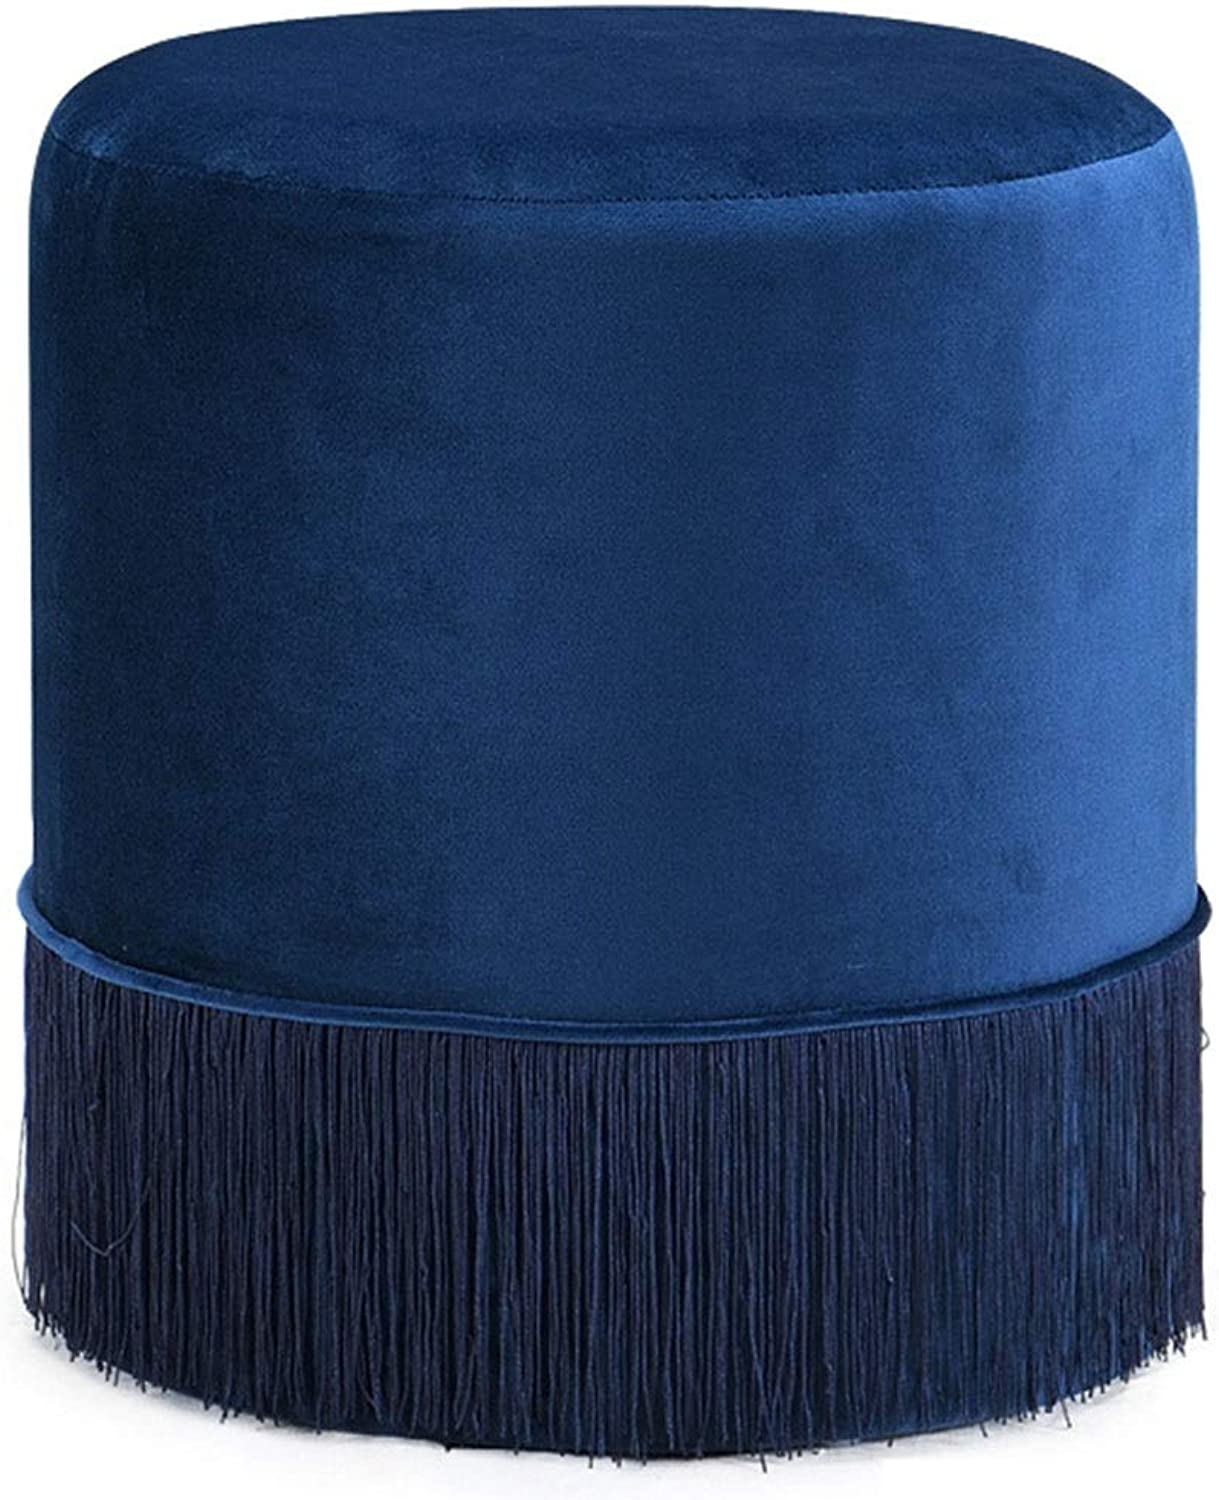 LSXIAO Pouffes And Footstools Dressing Table Stool Round Seat Fringe Decoration Living Room Footrest Mat, 4 colors (color   bluee, Size   40x40x44cm)